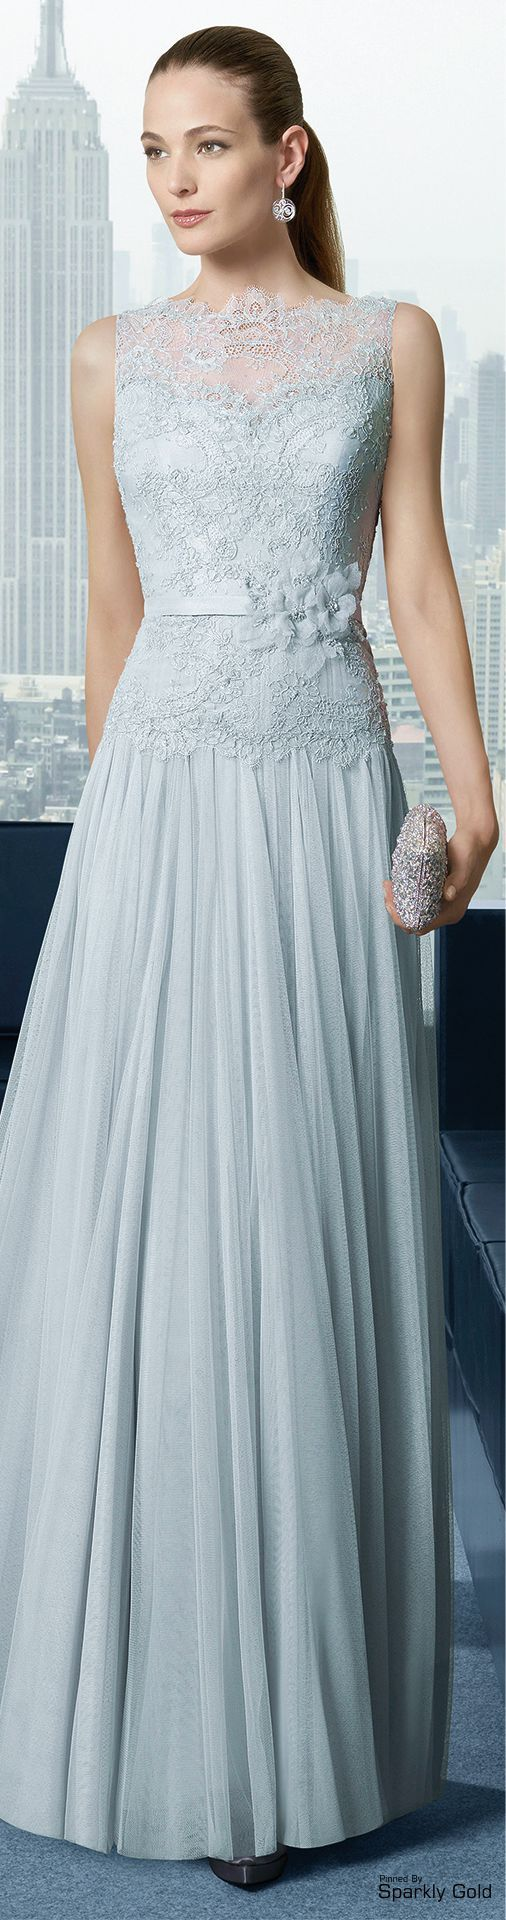 best images about fashion lace on pinterest lace maxi